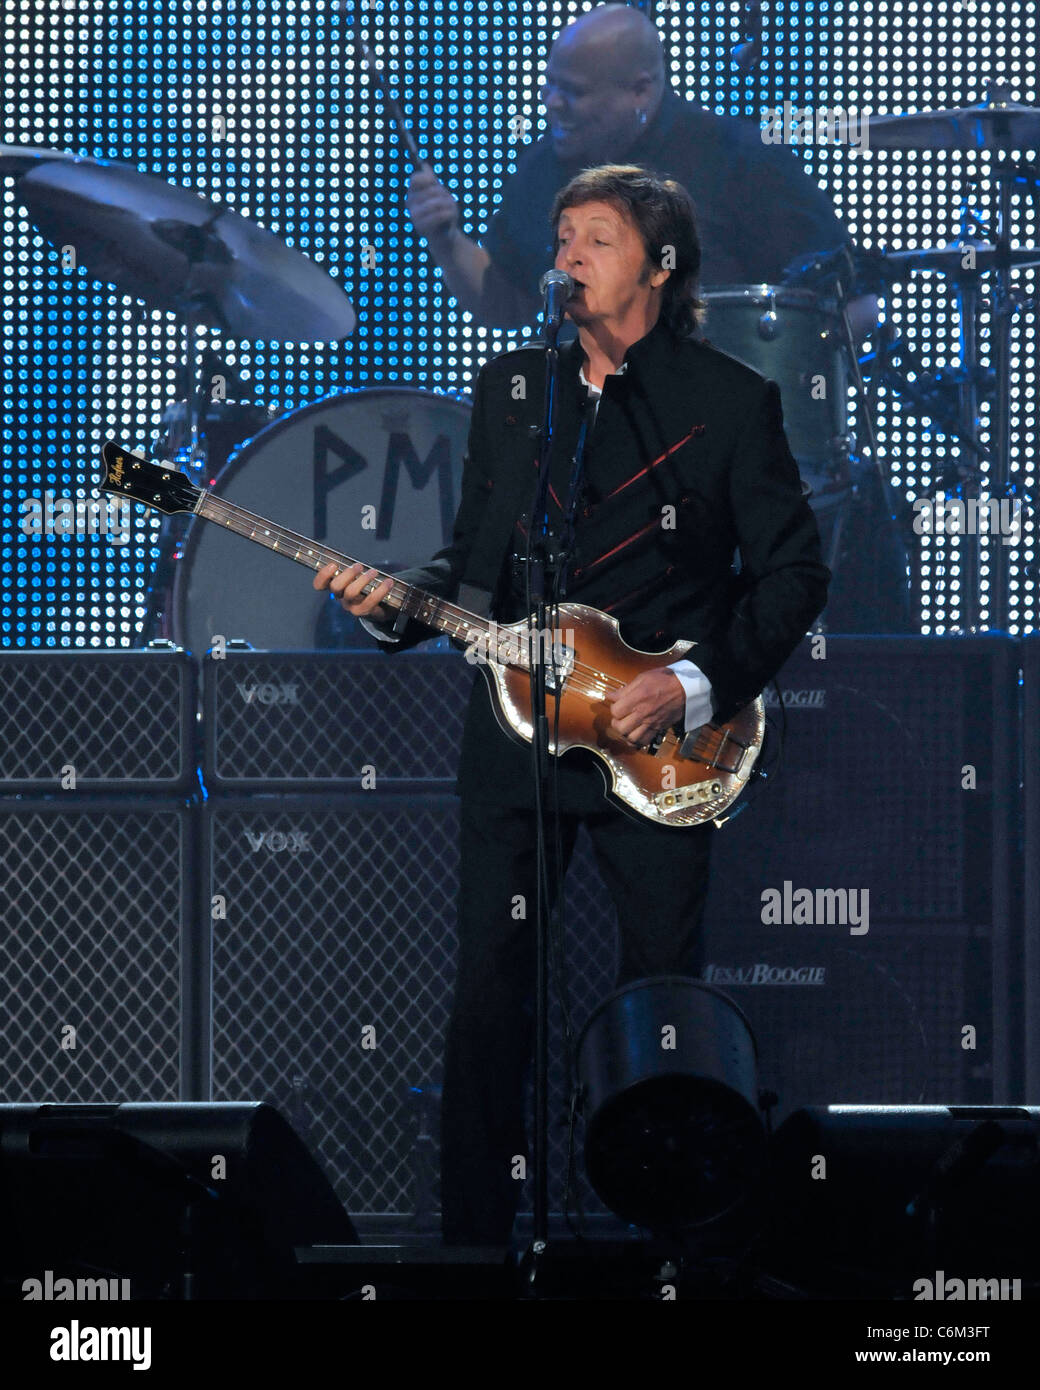 Sir Paul McCartney Performing On Stage During His Up And Coming Tour 2010 At The Air Canada Centre Toronto